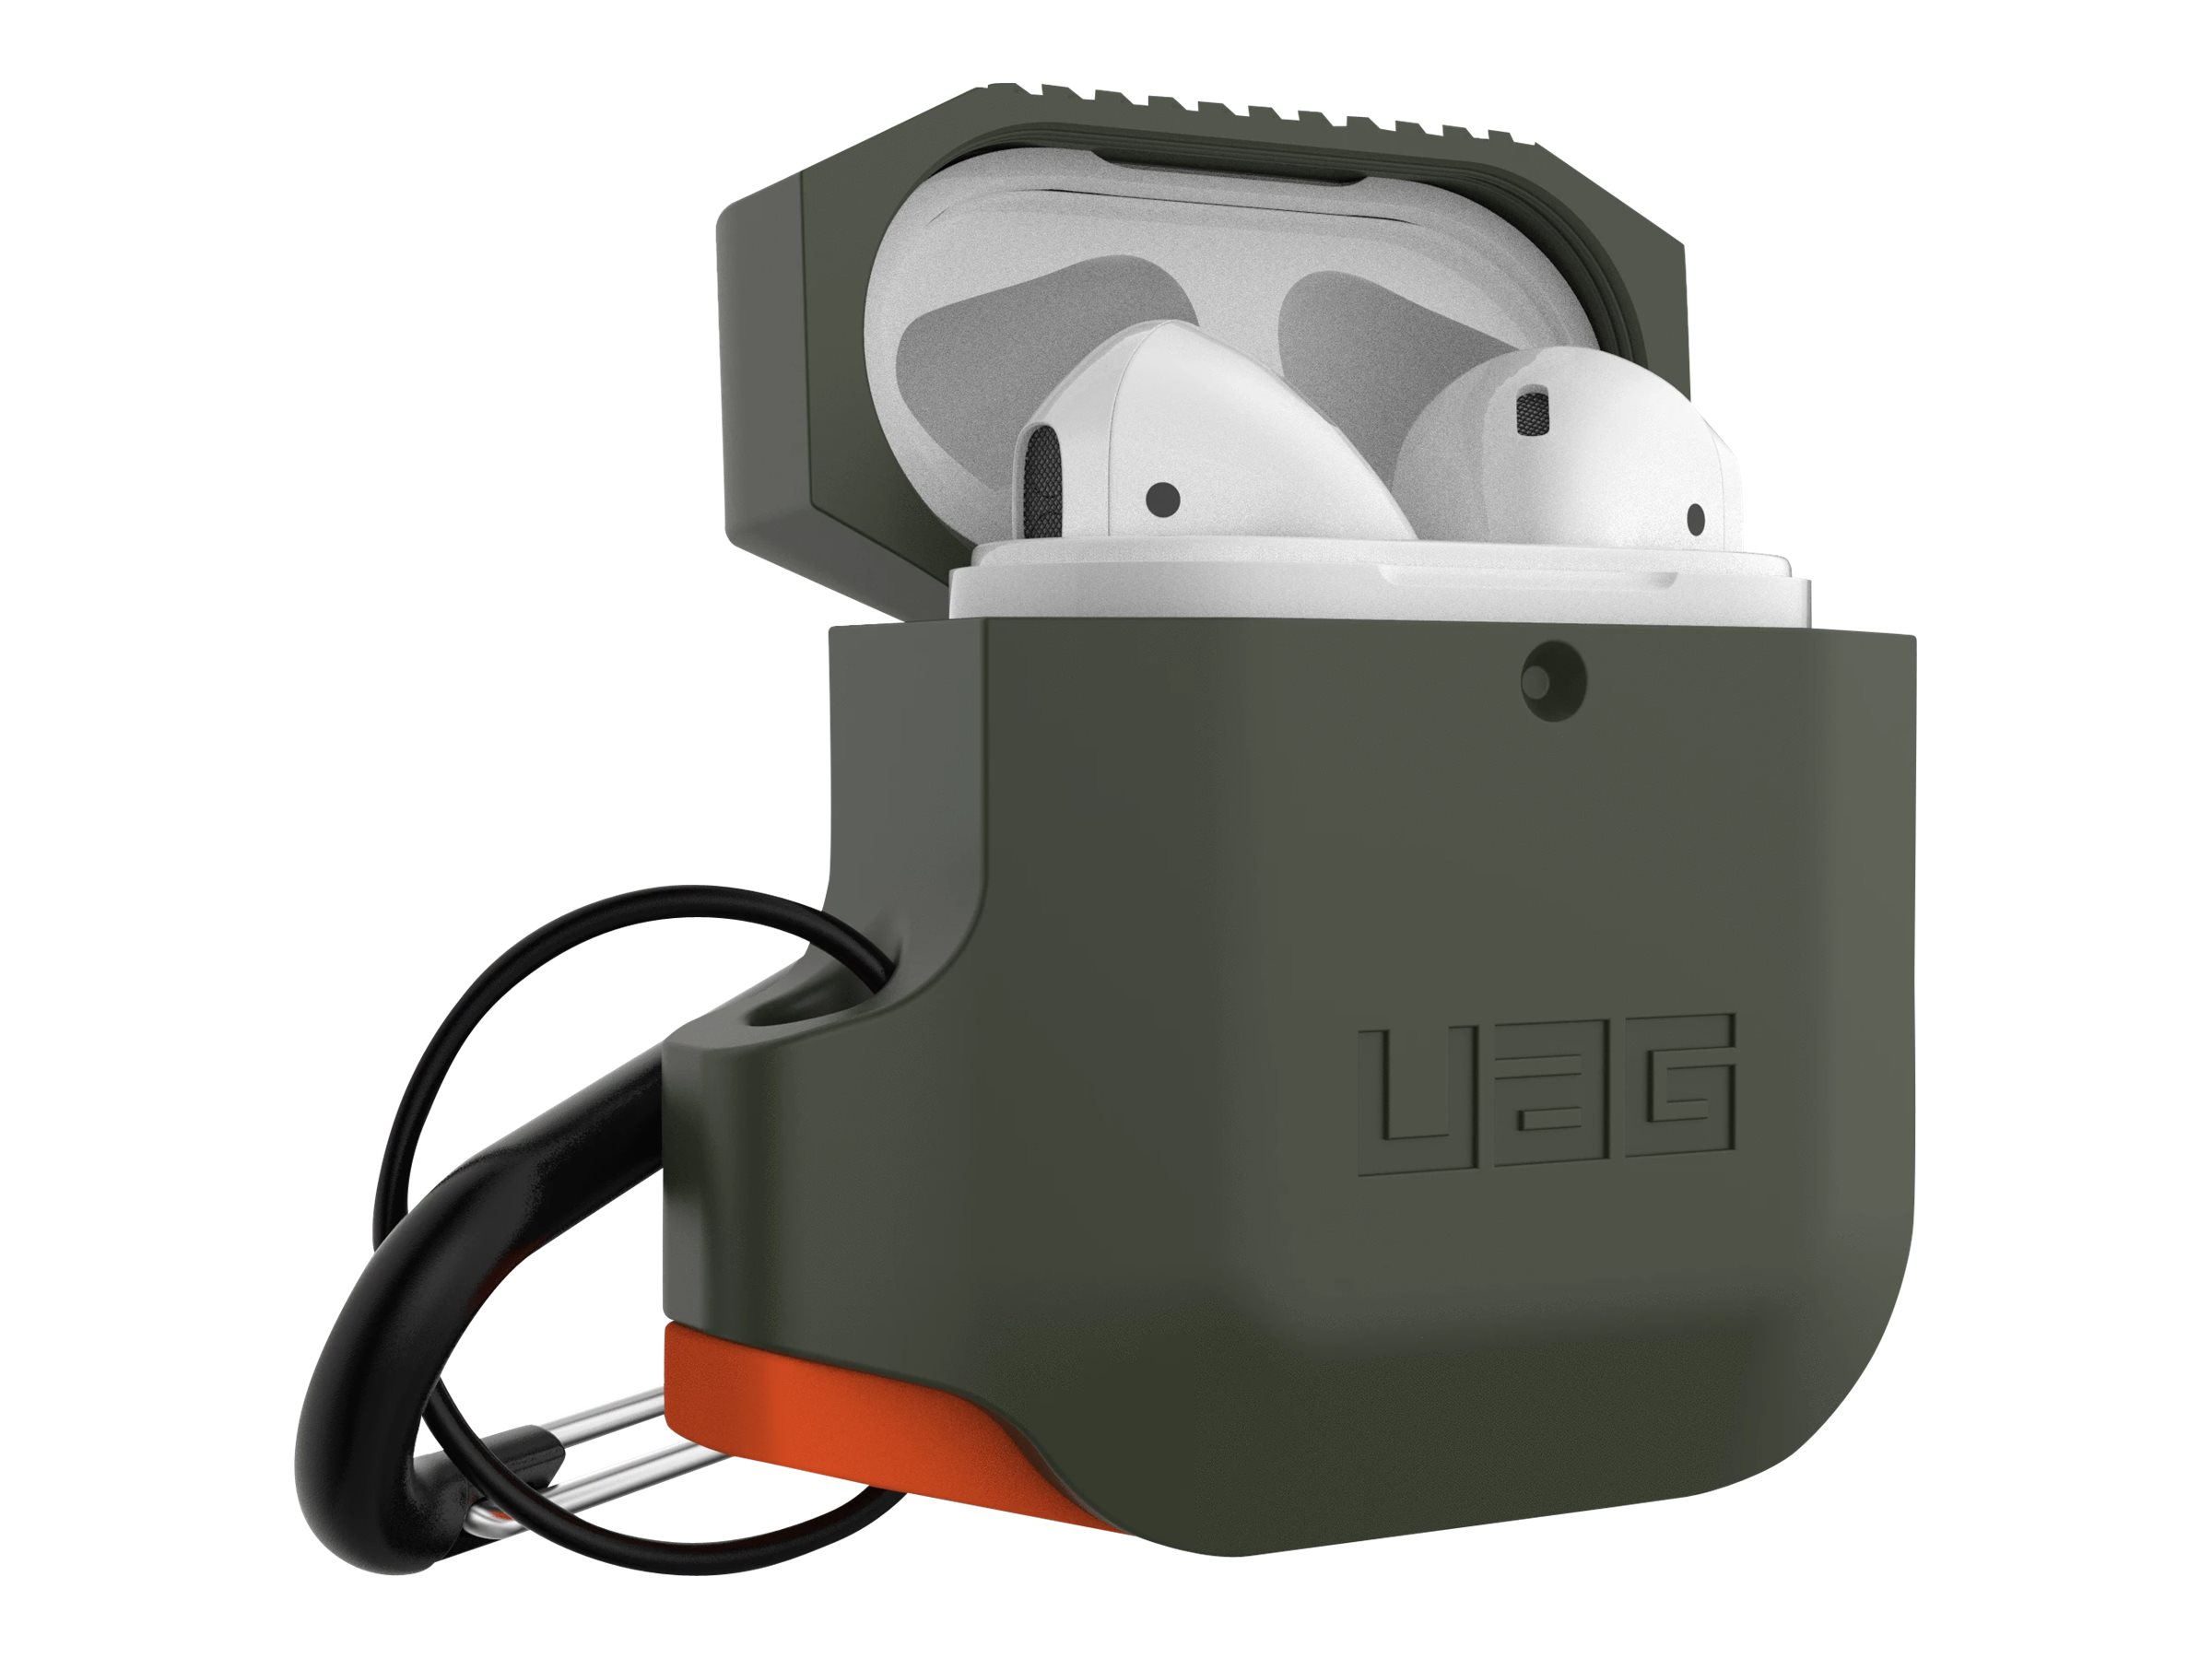 UAG Rugged Case for AirPods (1st & 2nd Gen) - Silicone Olive Drab/Orange - case for earphones